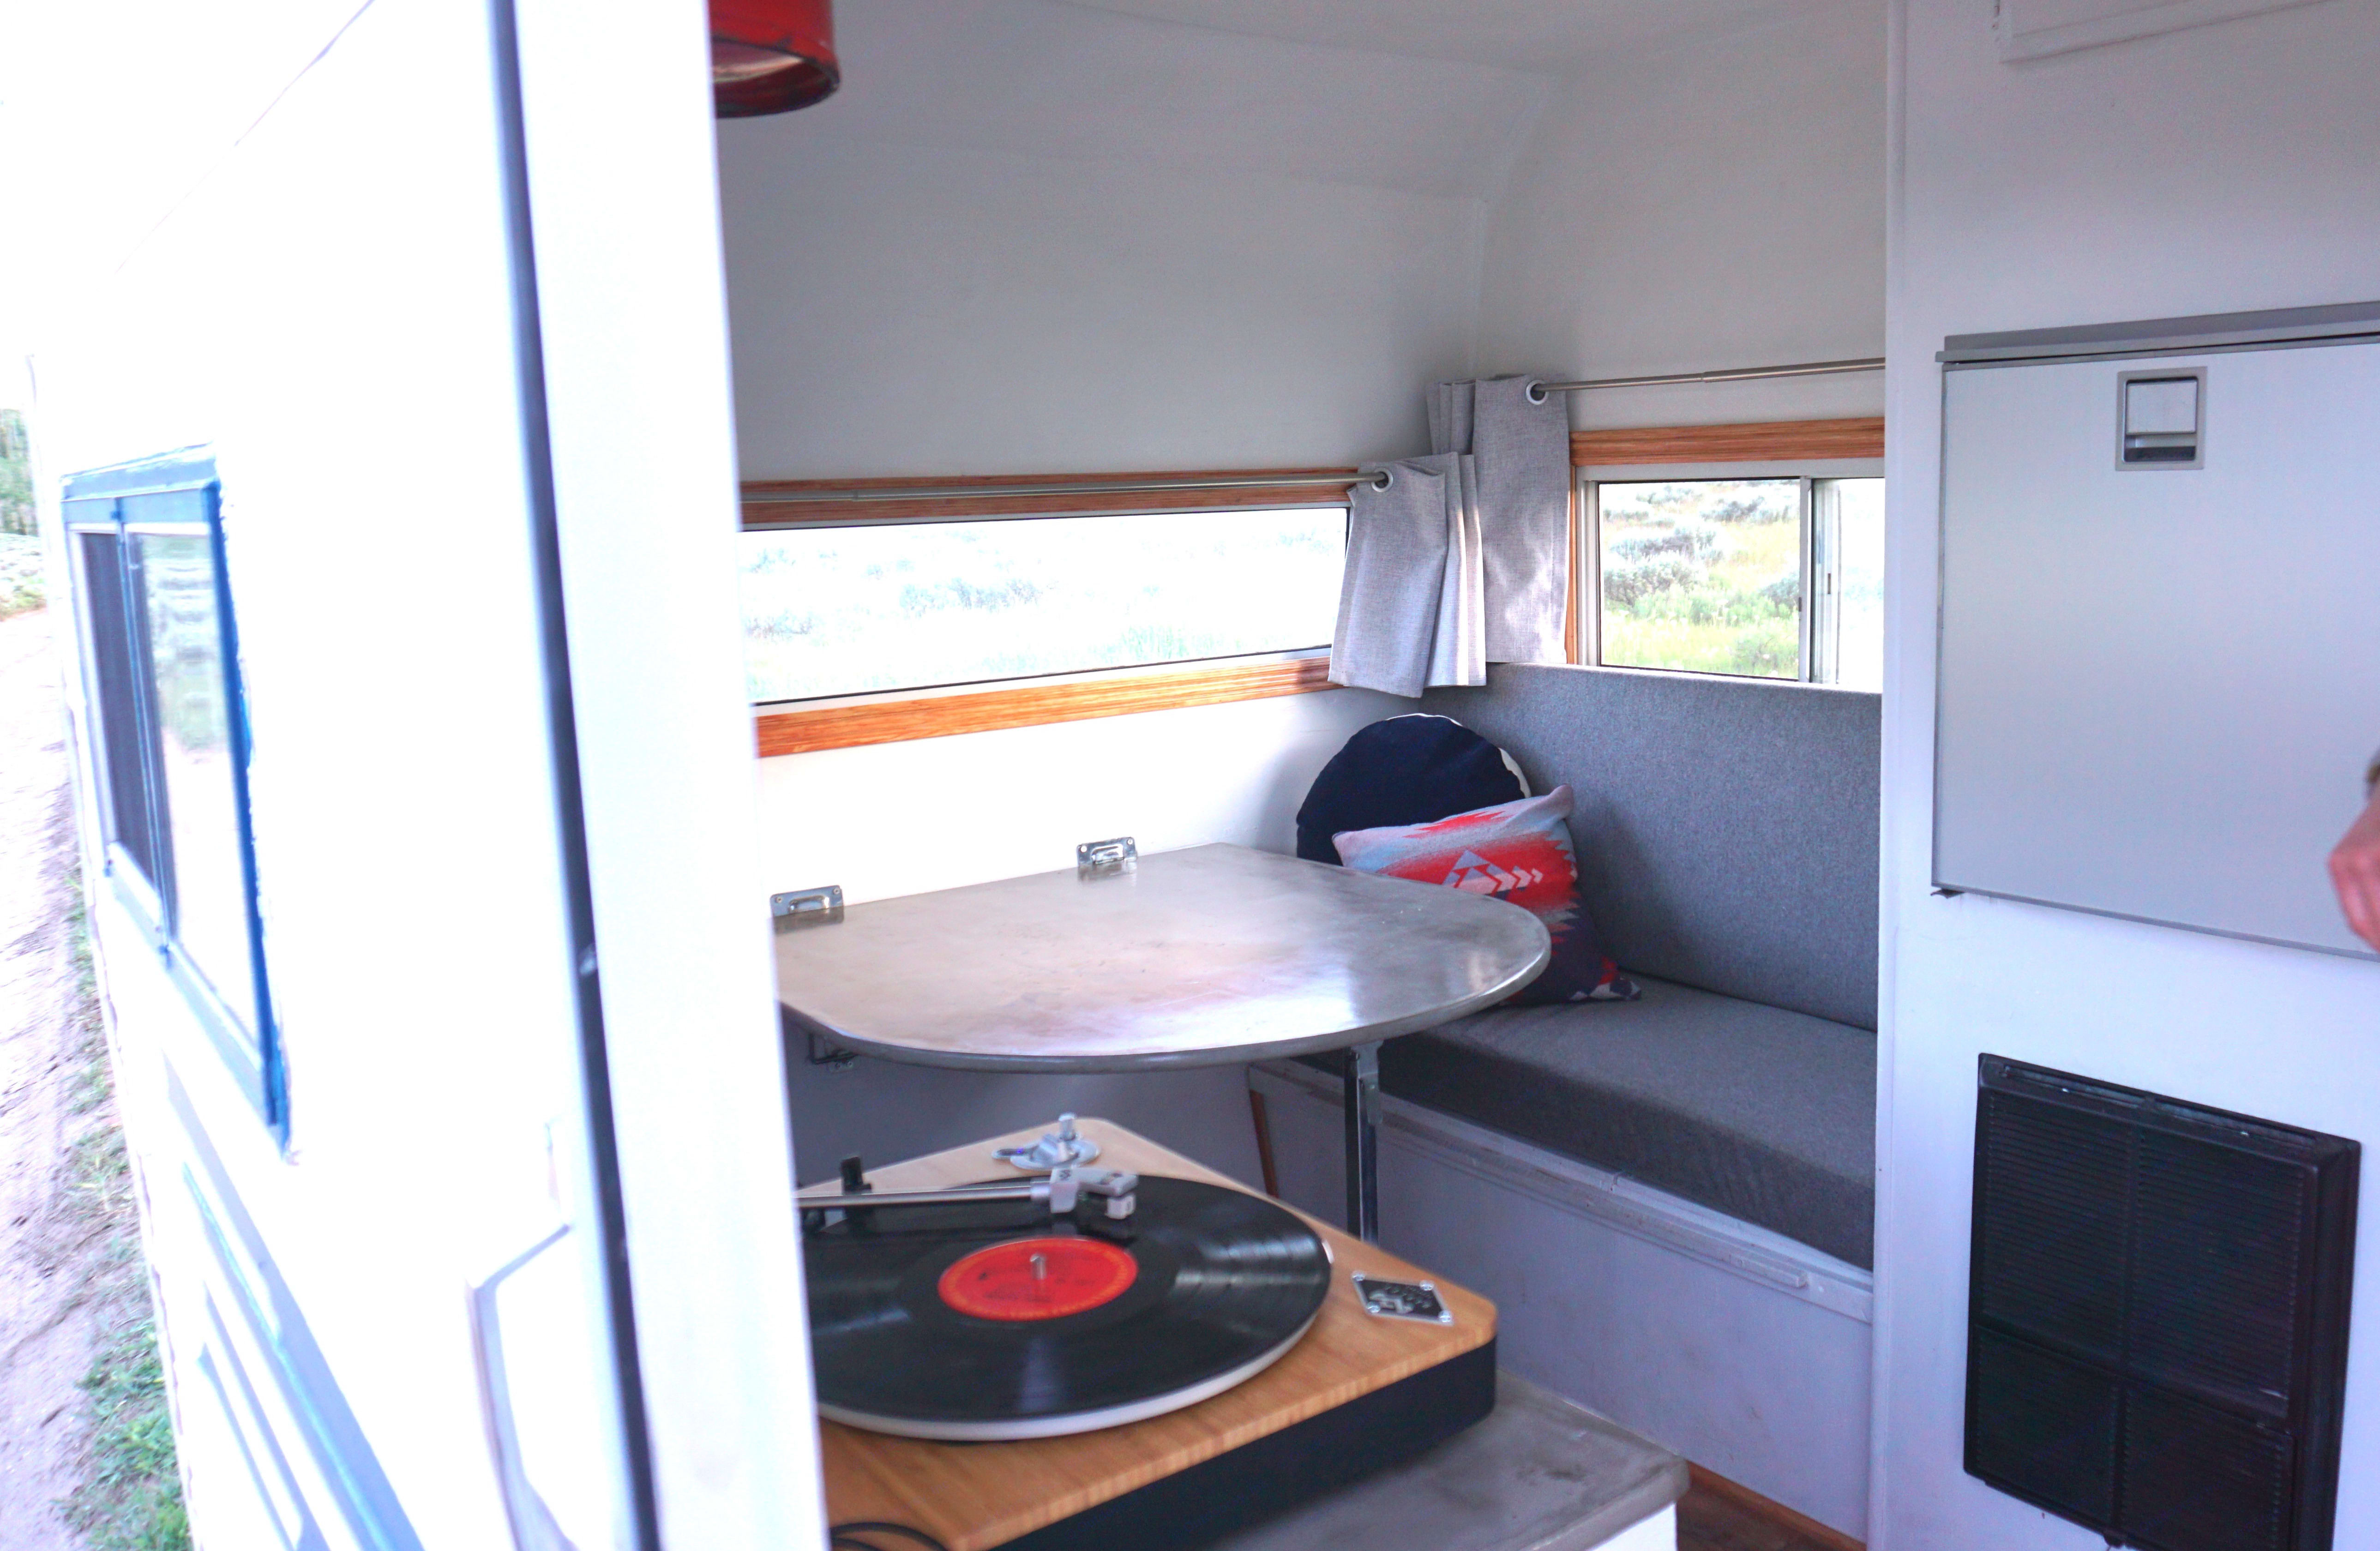 Record player included!. Caveman Camper 1973